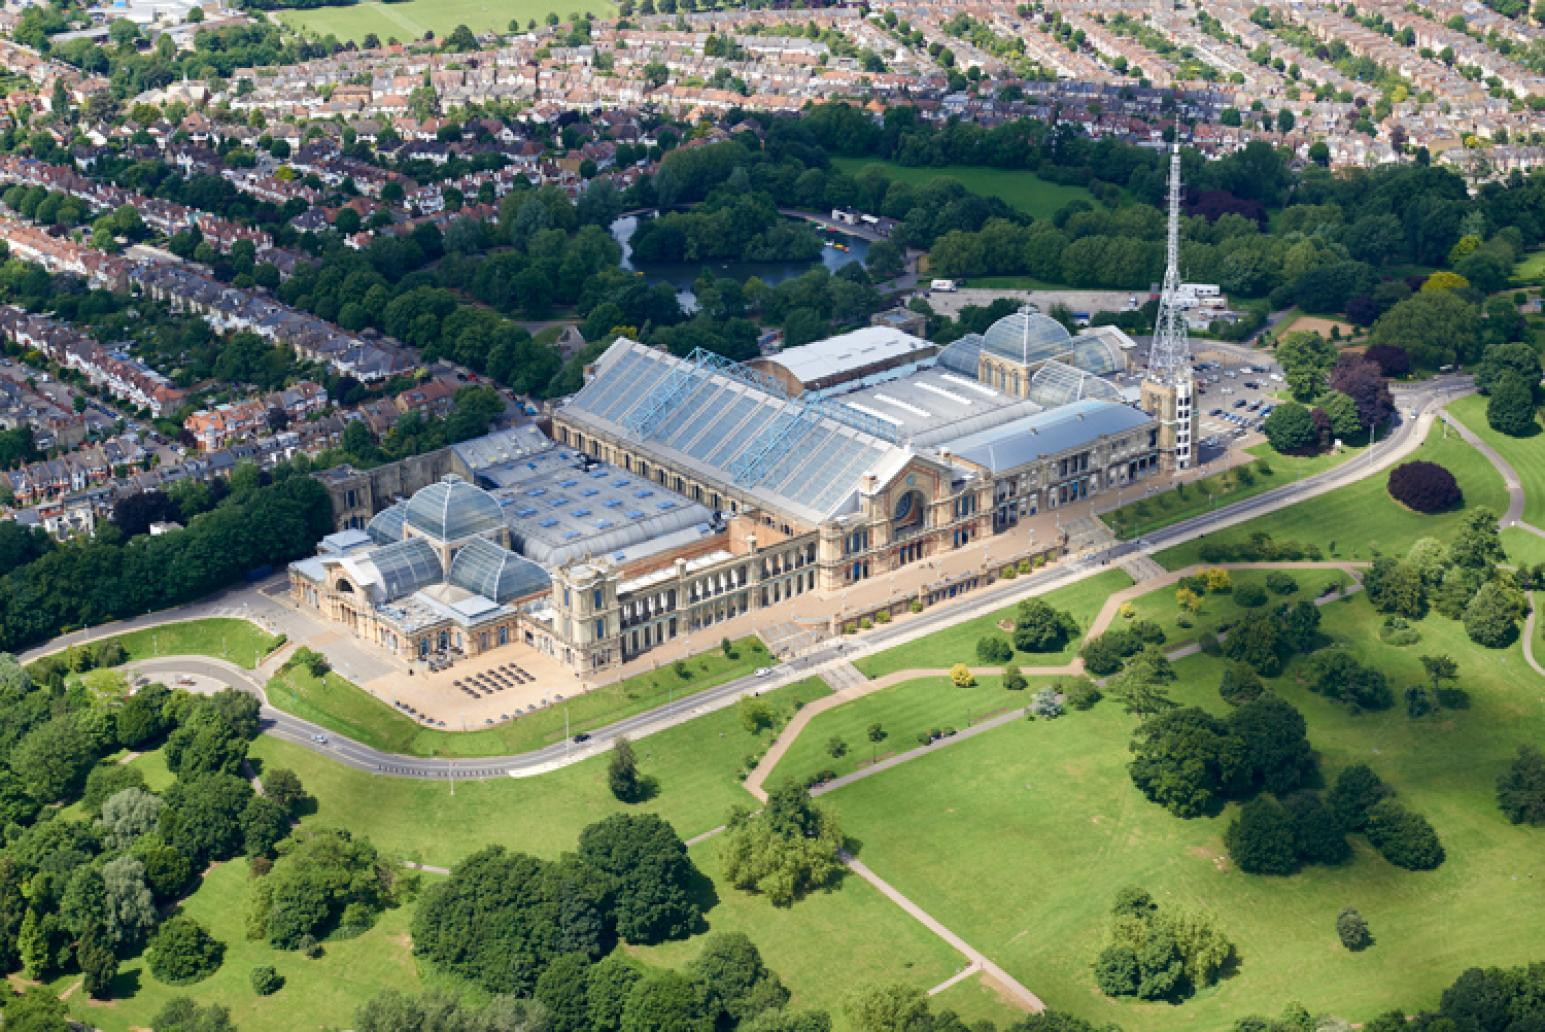 Set in 196 acres of parkland, Ally Pally welcomes over three million people a year, hosting an eclectic mix of live music, sport, cultural and leisure events.